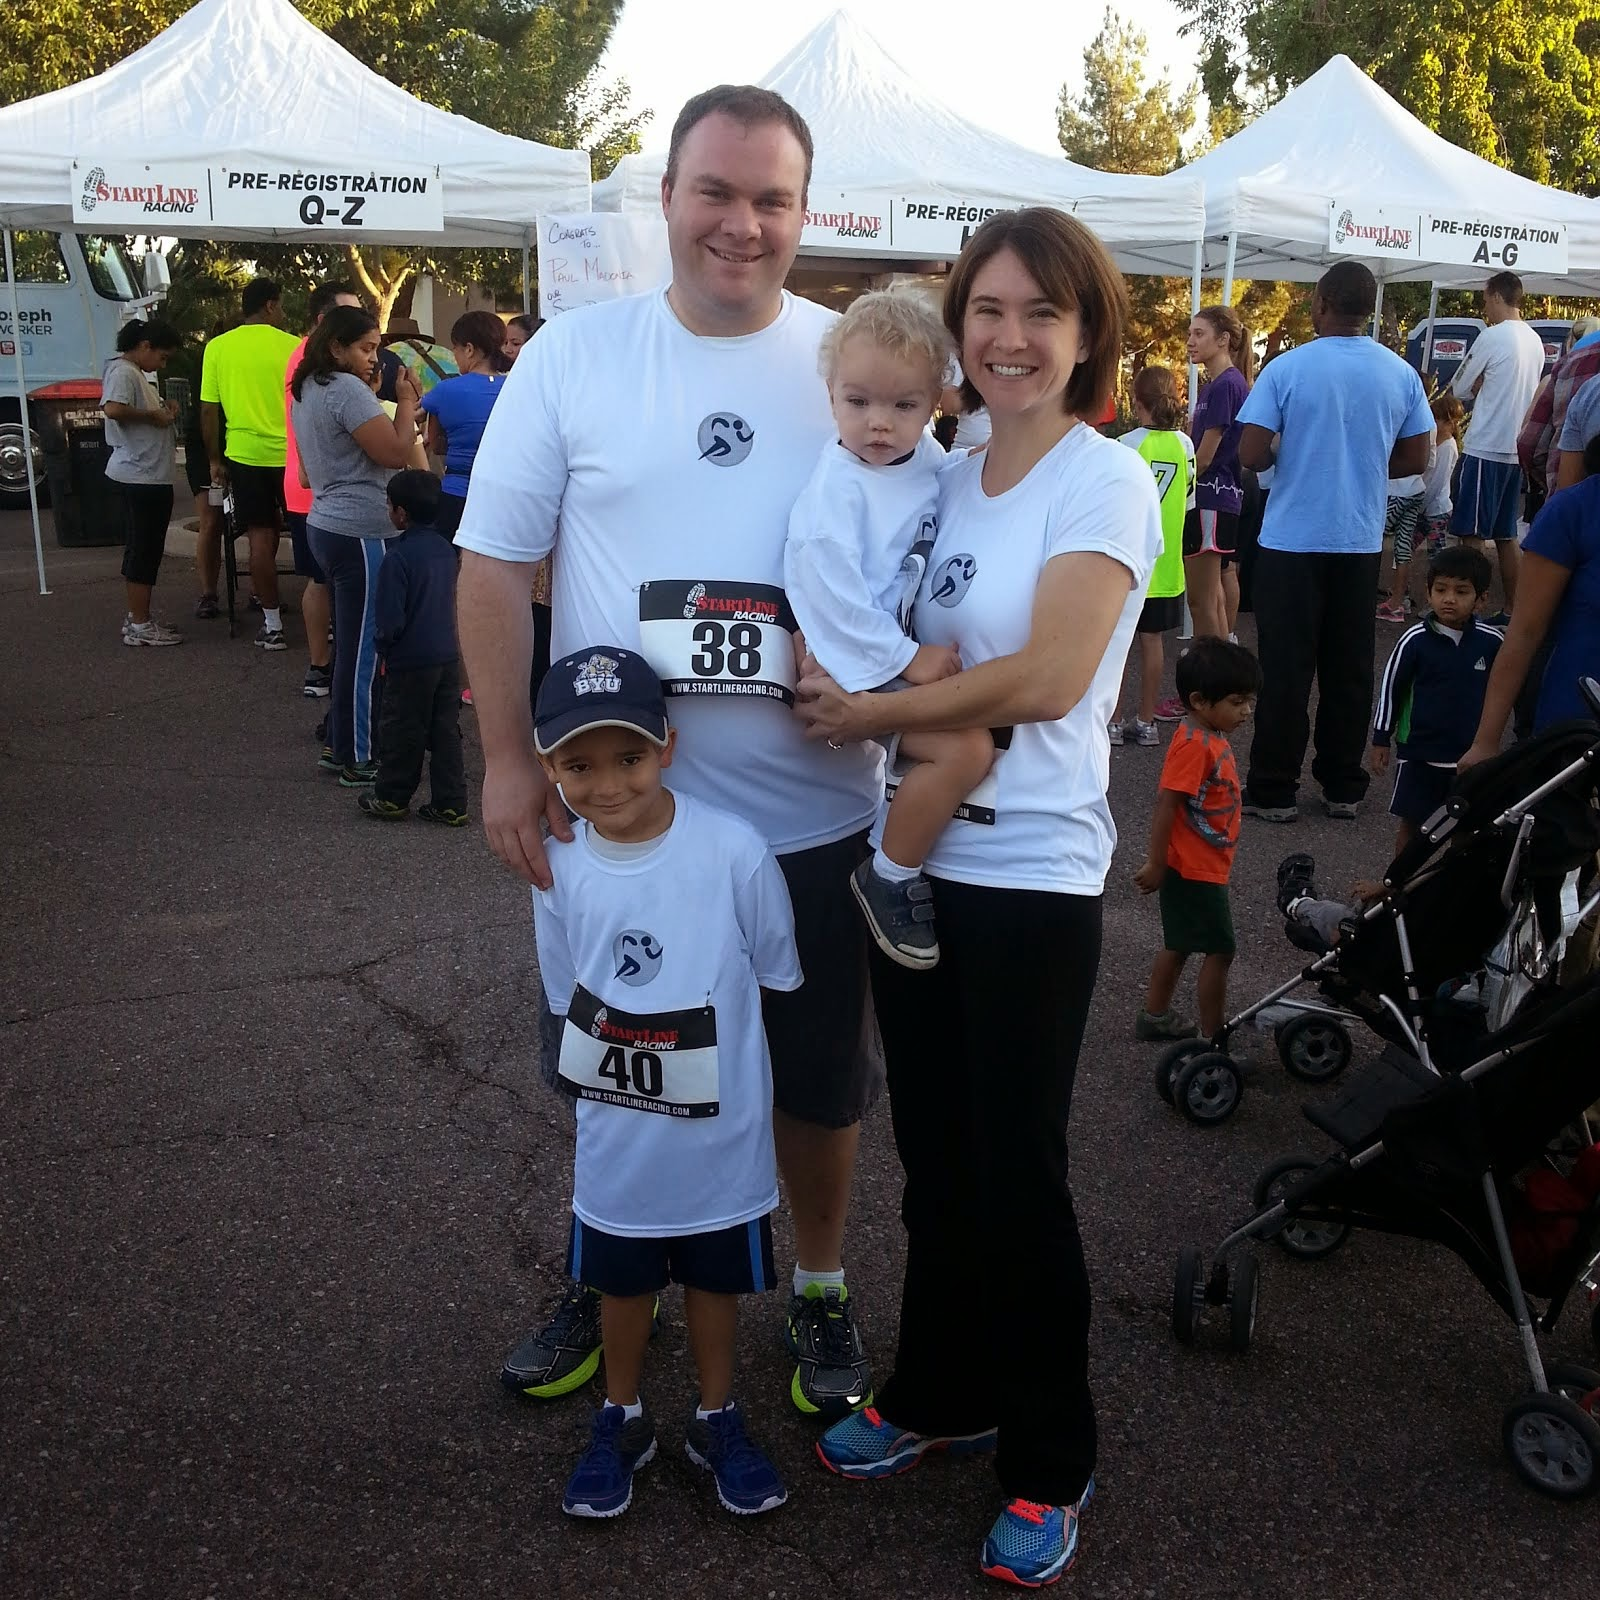 Family Fun Run 2014